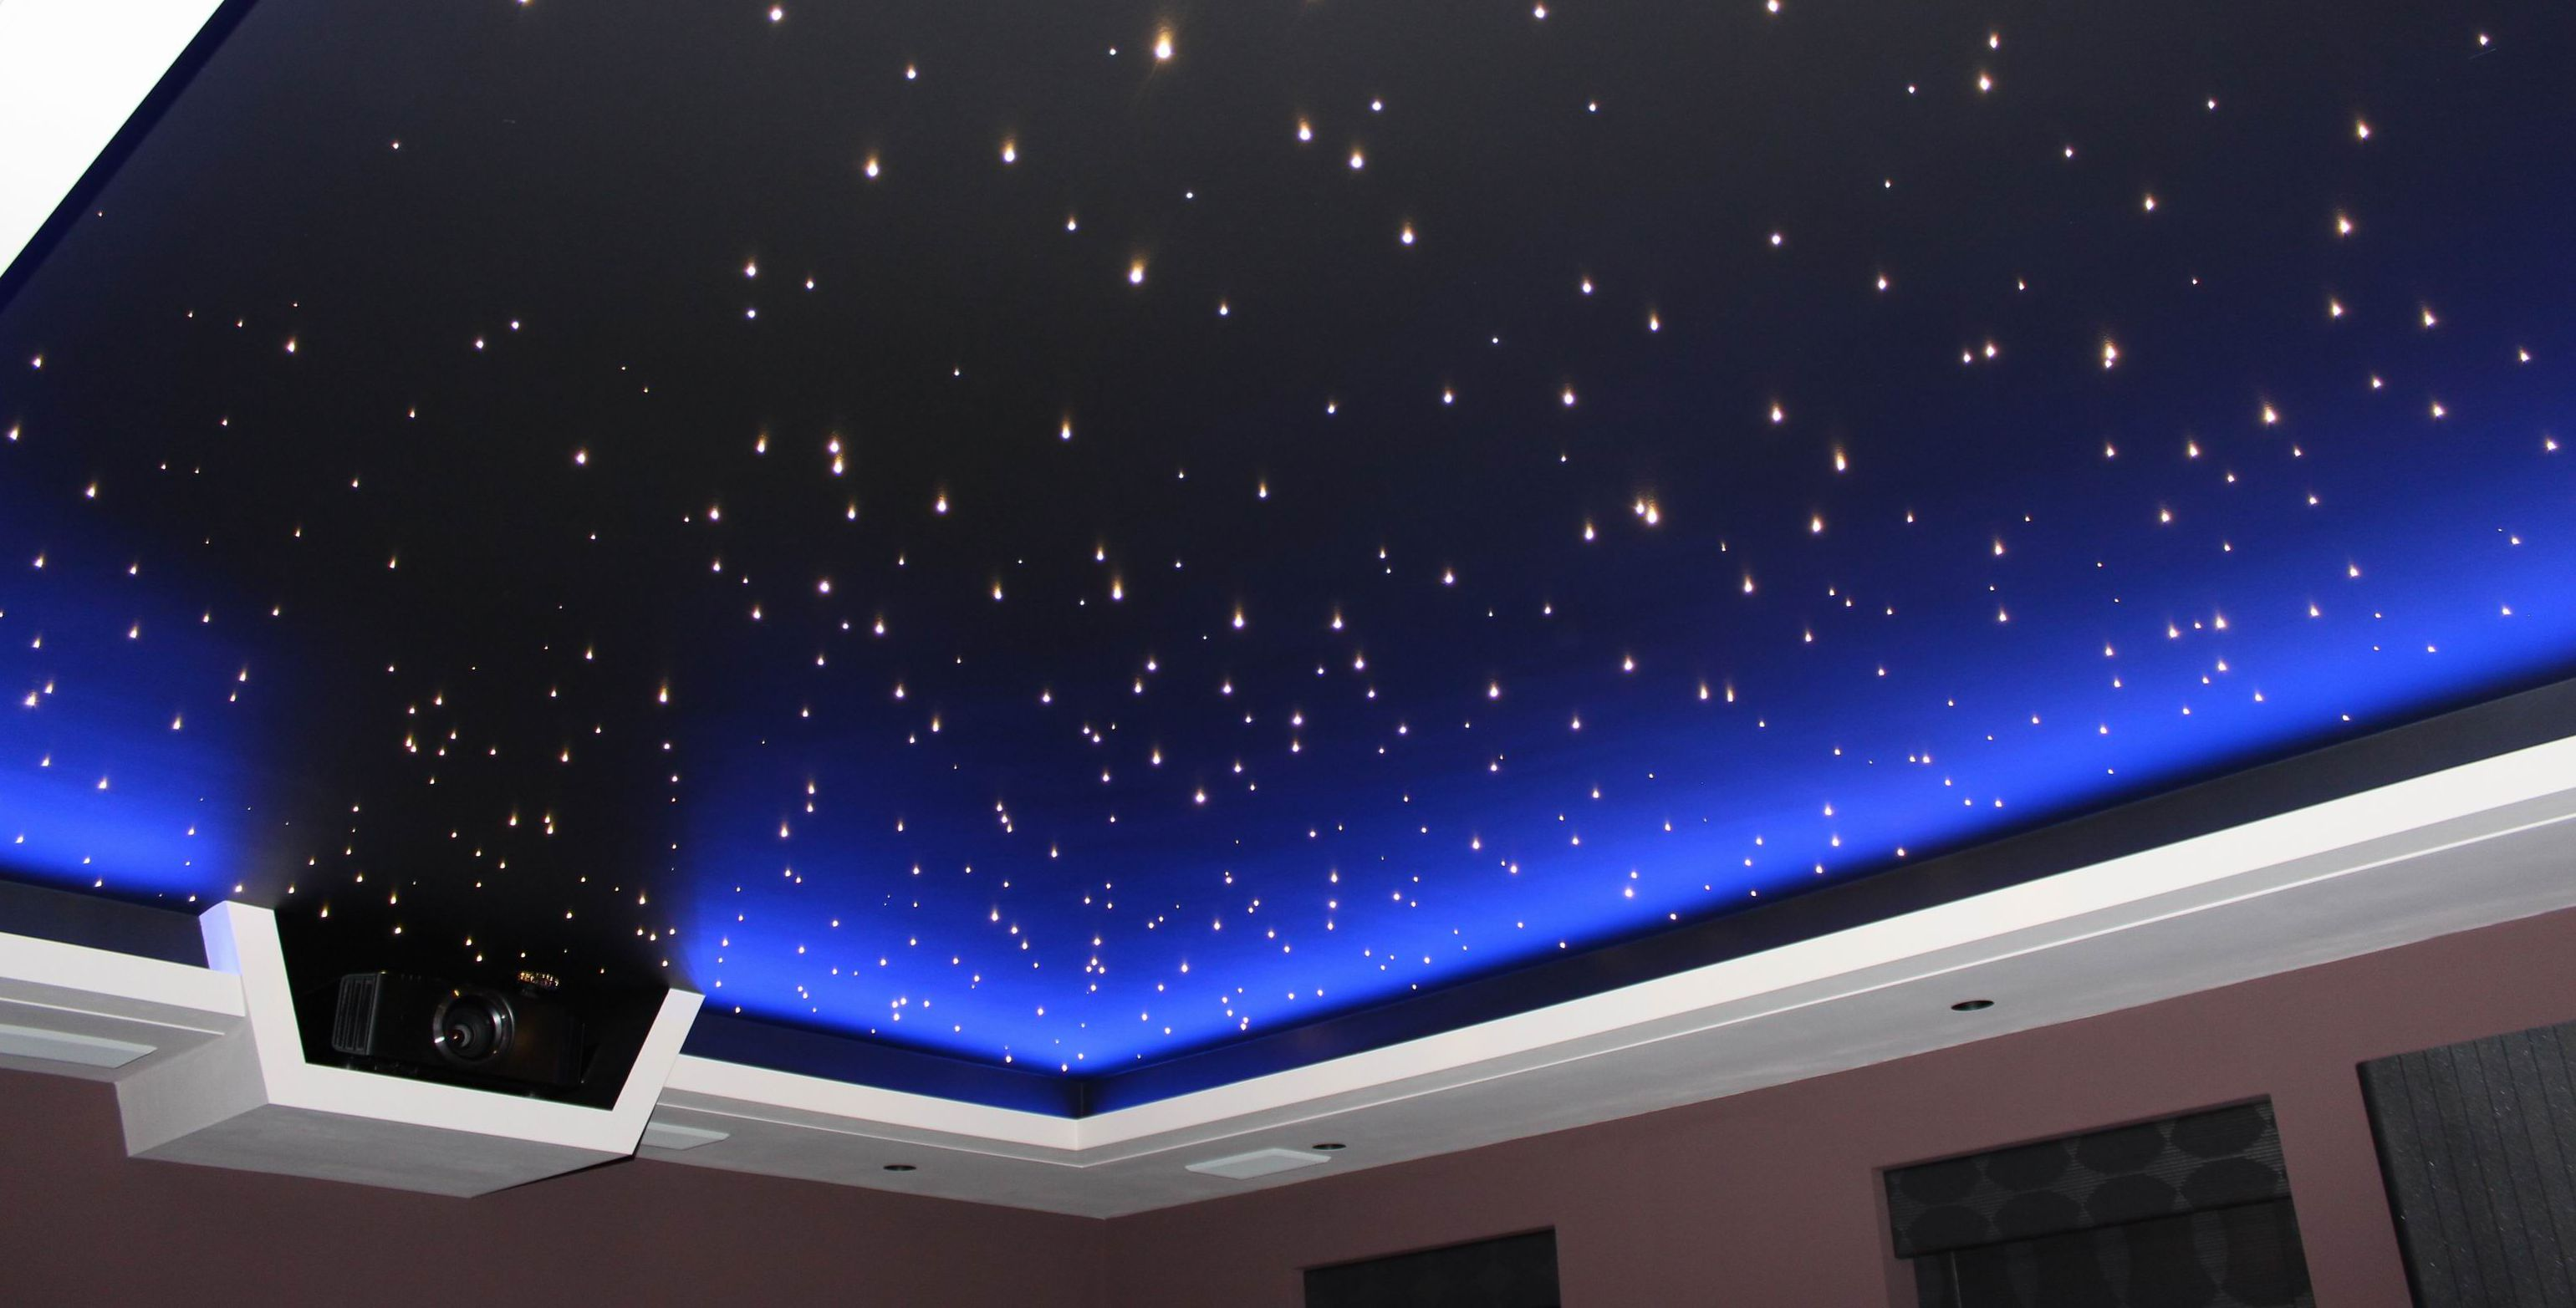 Light up your room with led star light ceiling warisan lighting light up your room with led star light ceiling mozeypictures Image collections